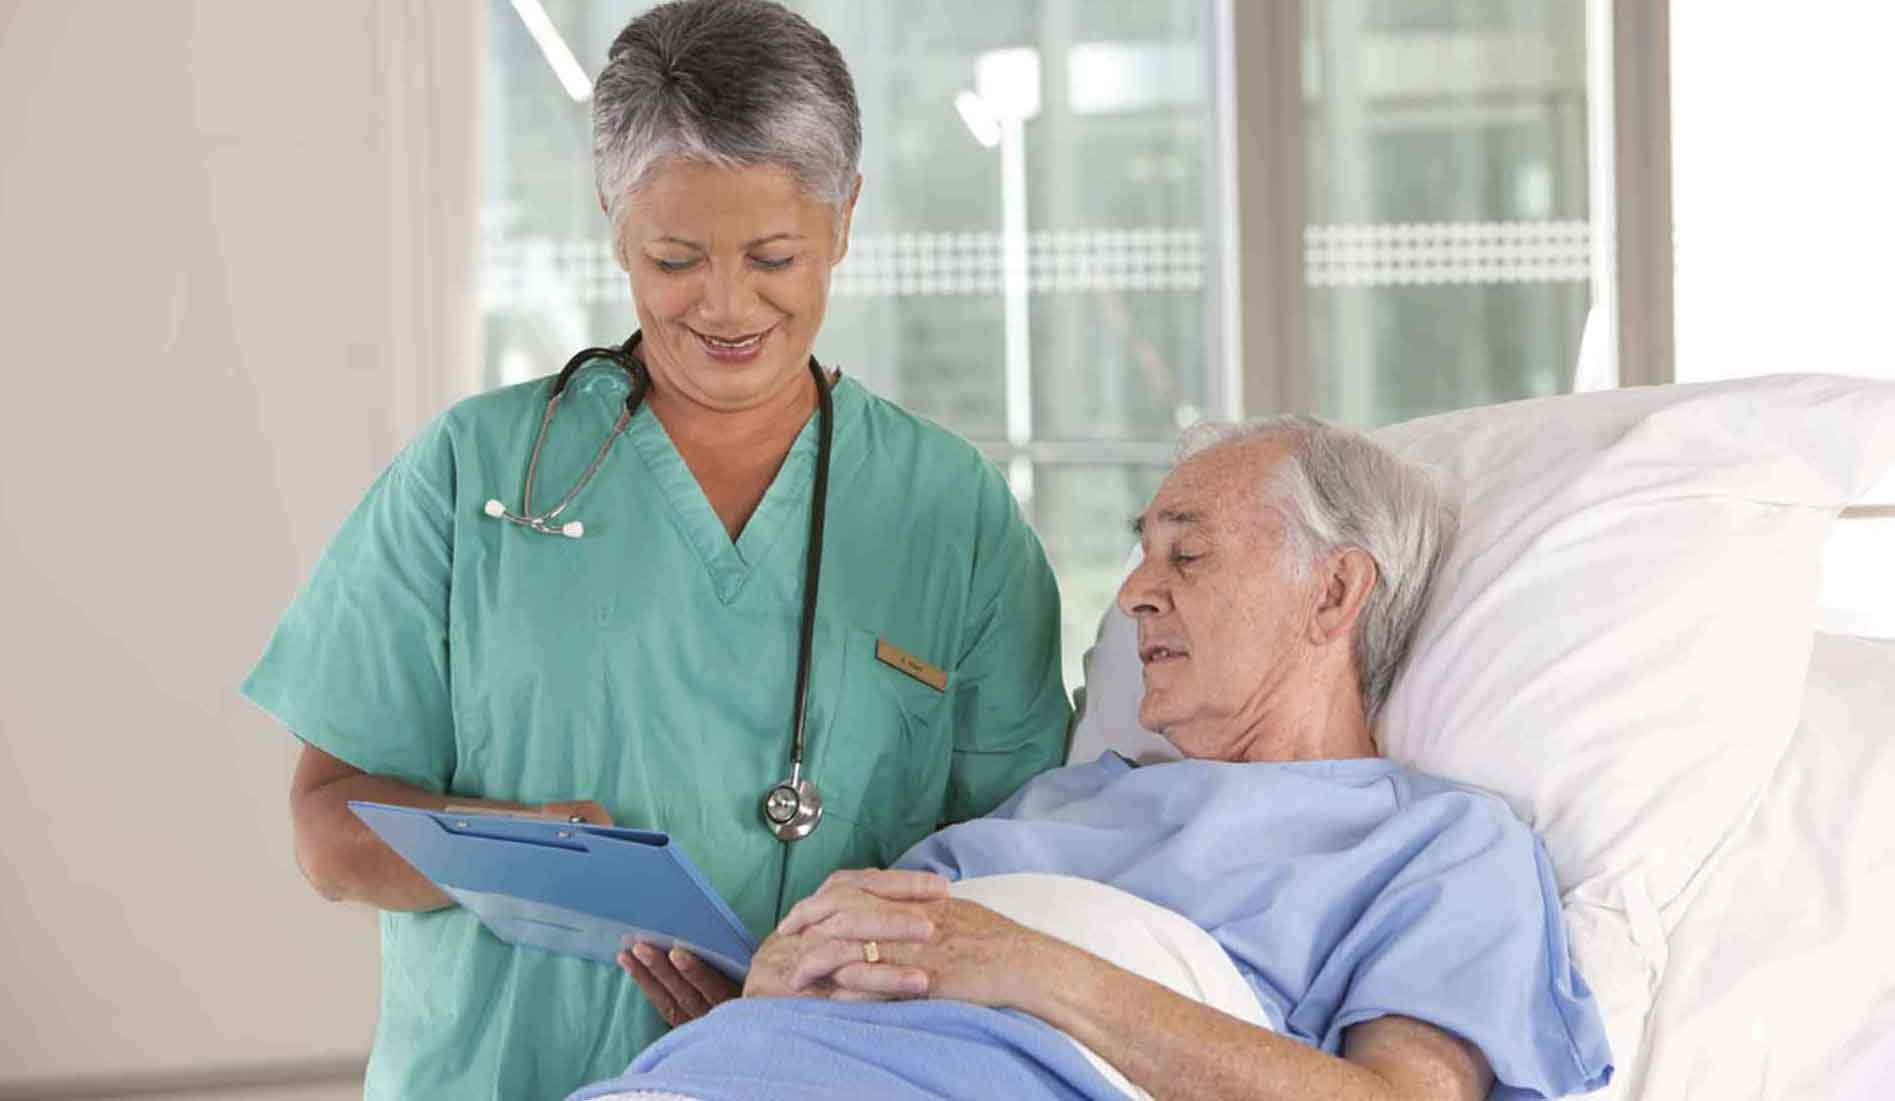 nursing health care and illness acute Apna's definition of primary health care nursing and the role of the general practice  incorporates personal care with health promotion, the prevention of illness.